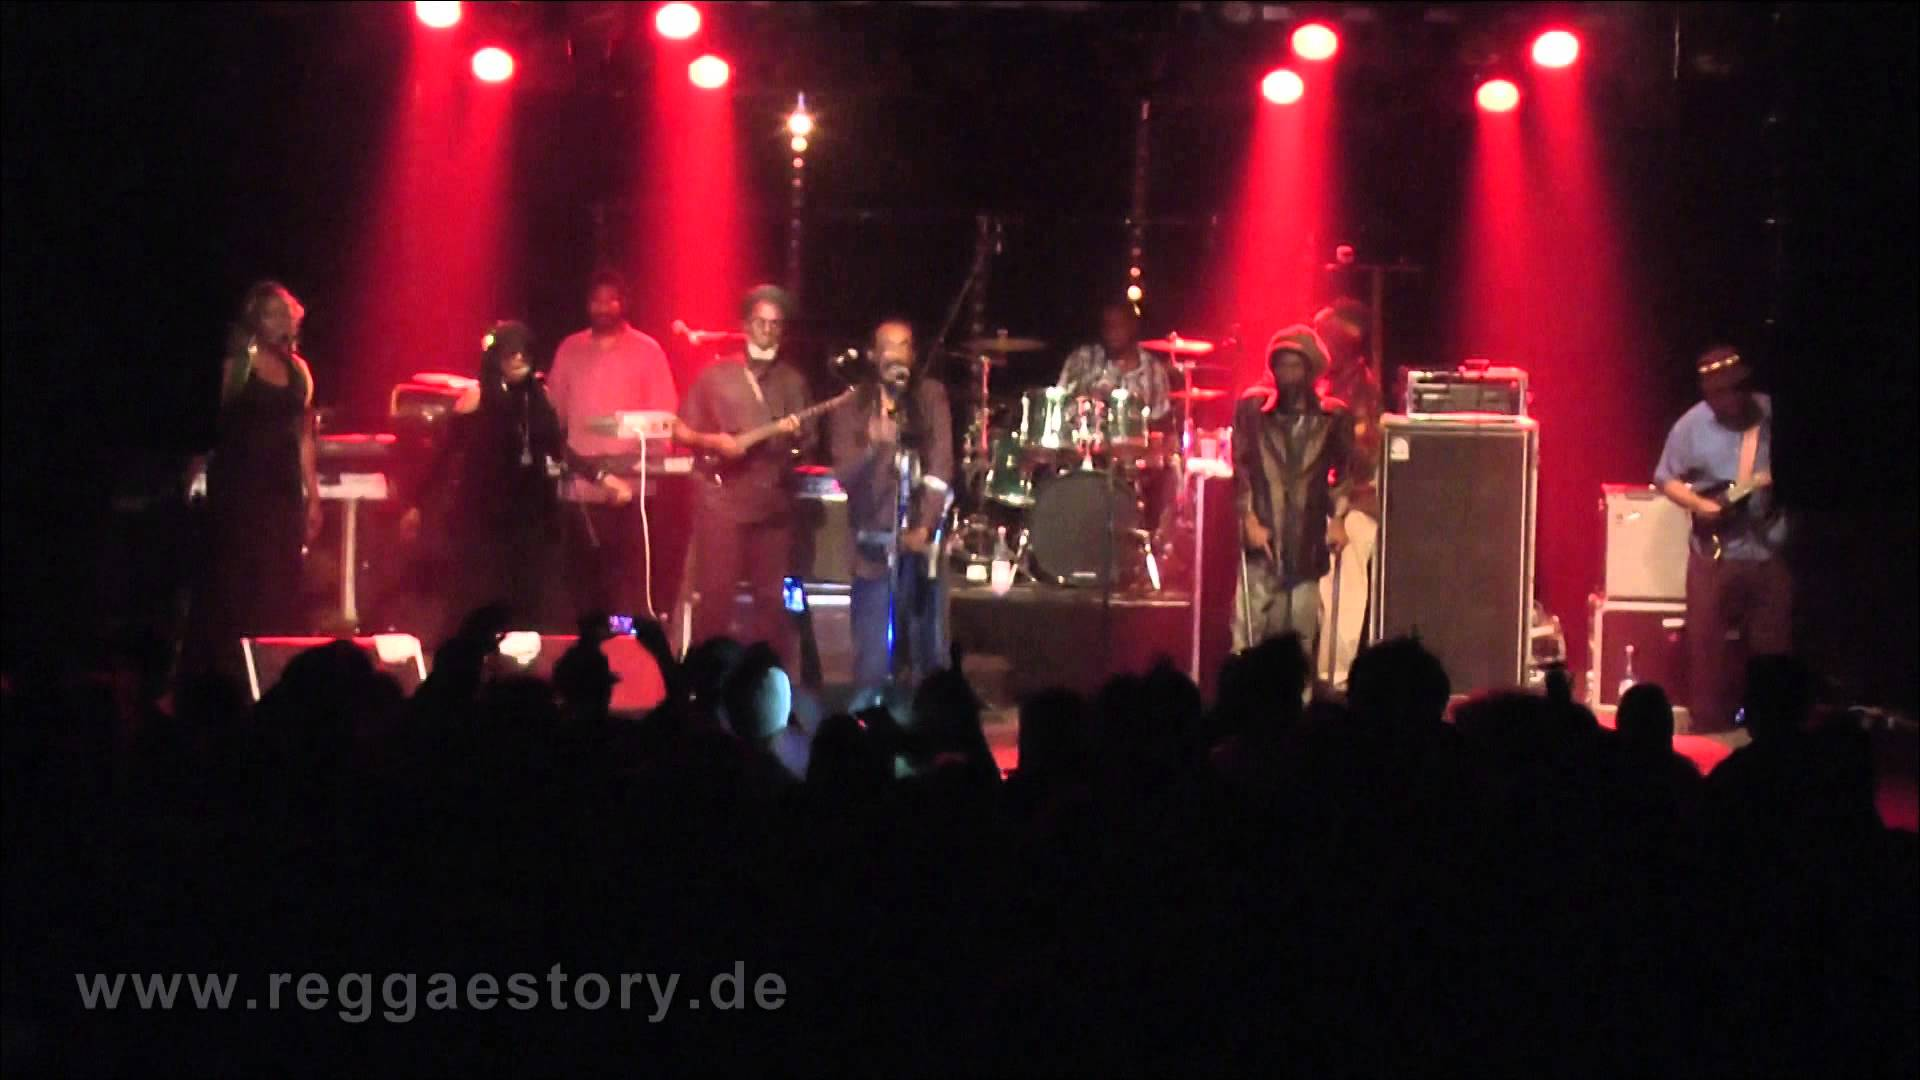 Israel Vibration - Same Song in Berlin, Germany @ Yaam [6/9/2015]